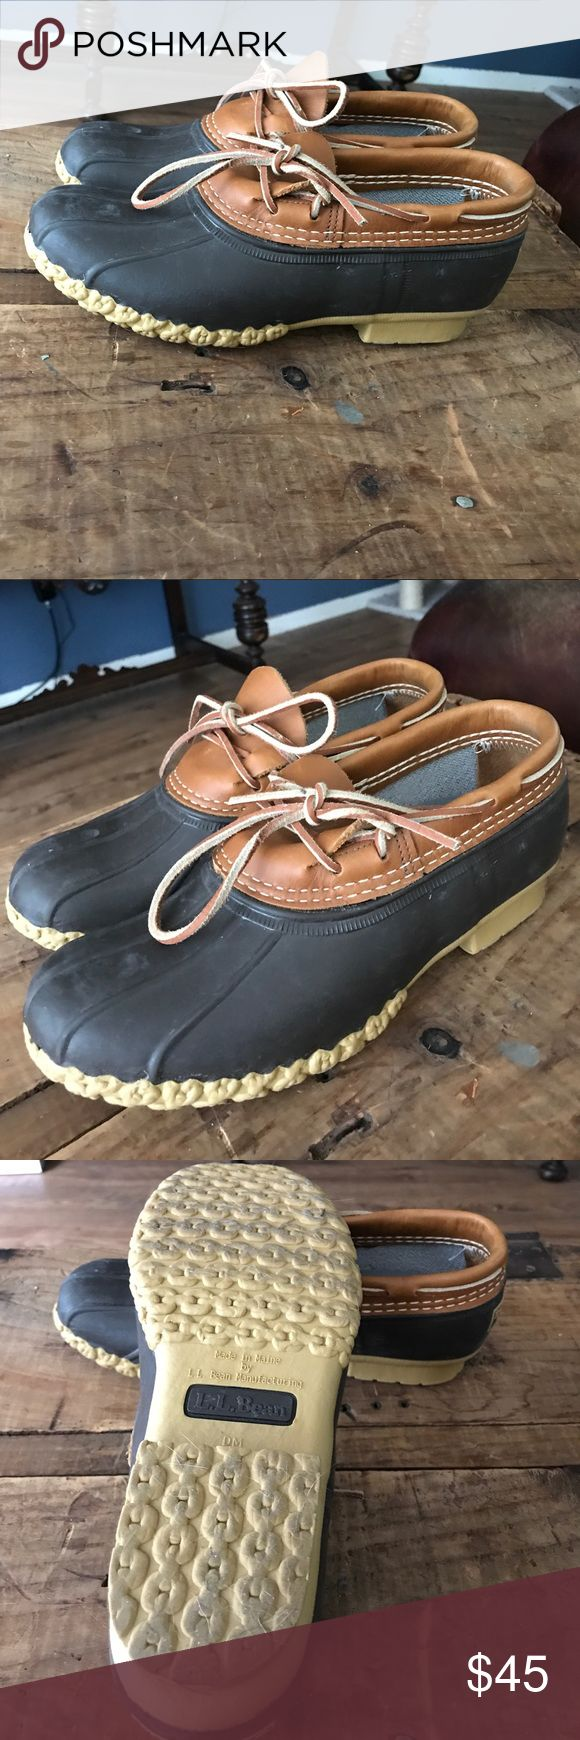 LL Bean duck boots RePosh. Love these but they were listed as a 9 and I would say these fit like a 9.5. There is not tag to say what size they actually are. Super comfy,like new, no signs of wear. L.L. Bean Shoes Ankle Boots & Booties